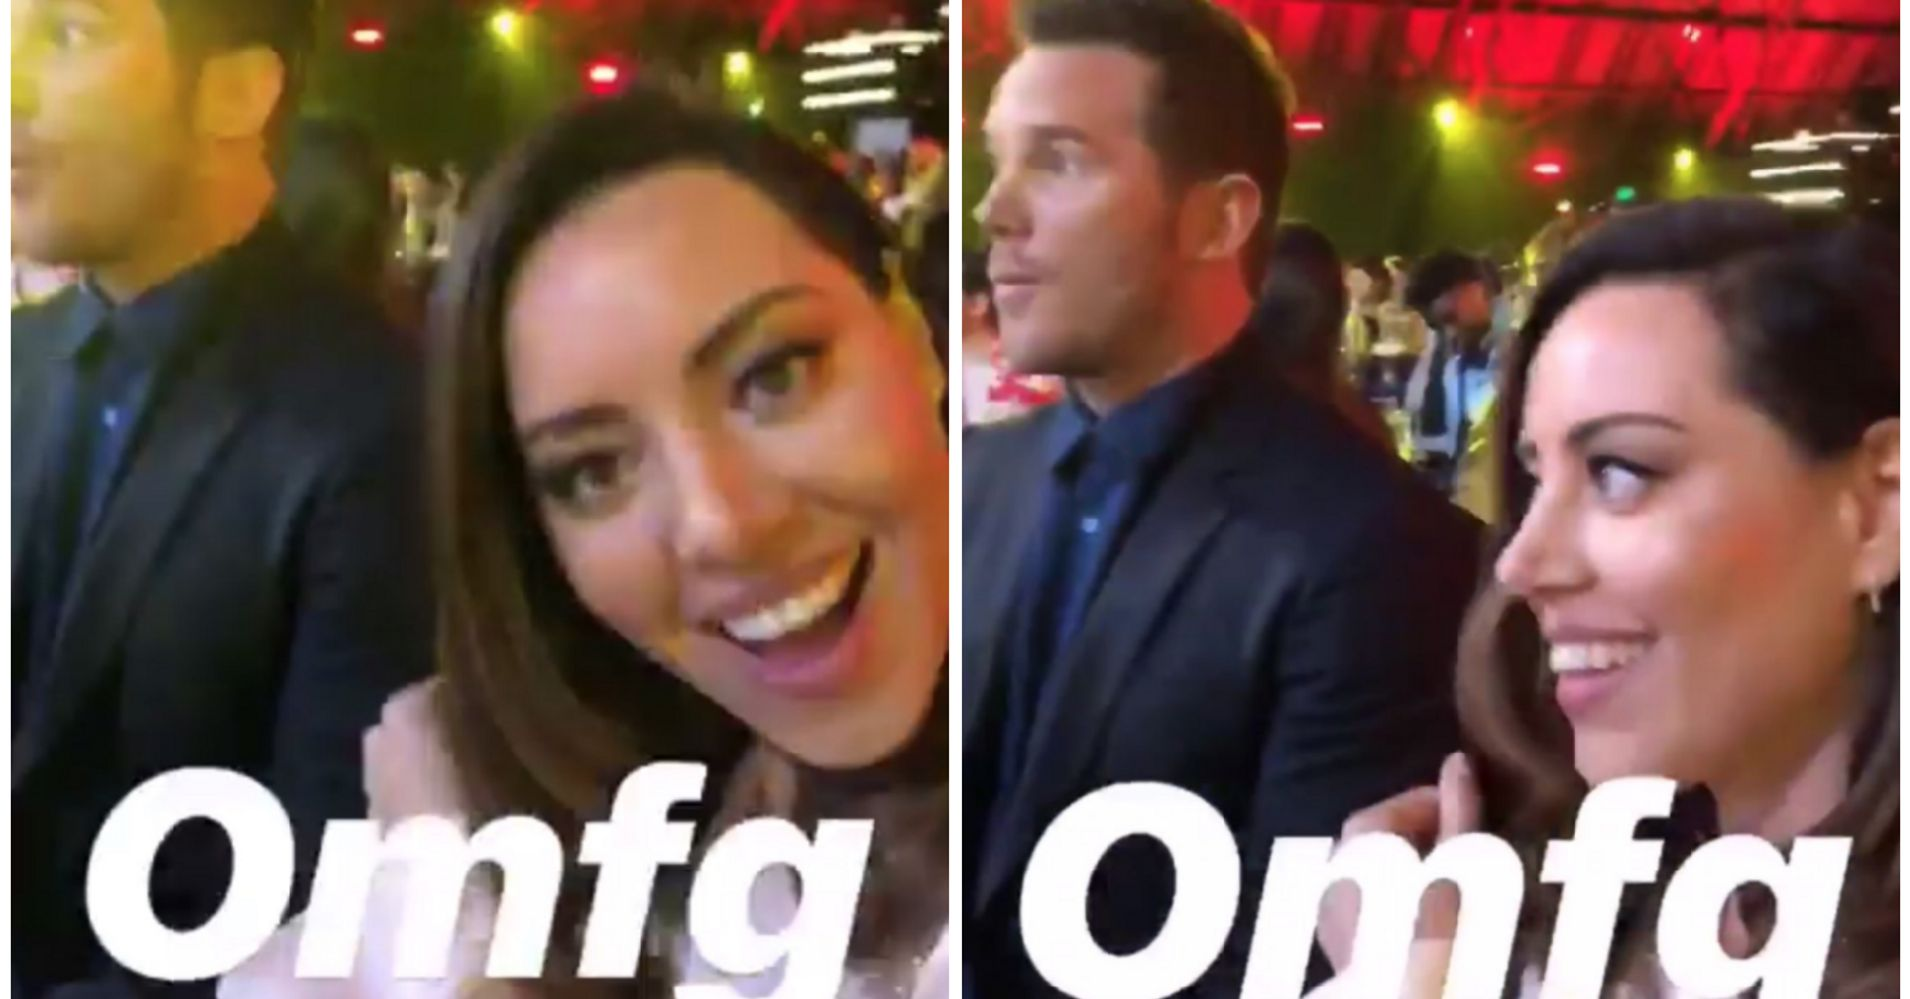 Aubrey plaza dating chris pratt